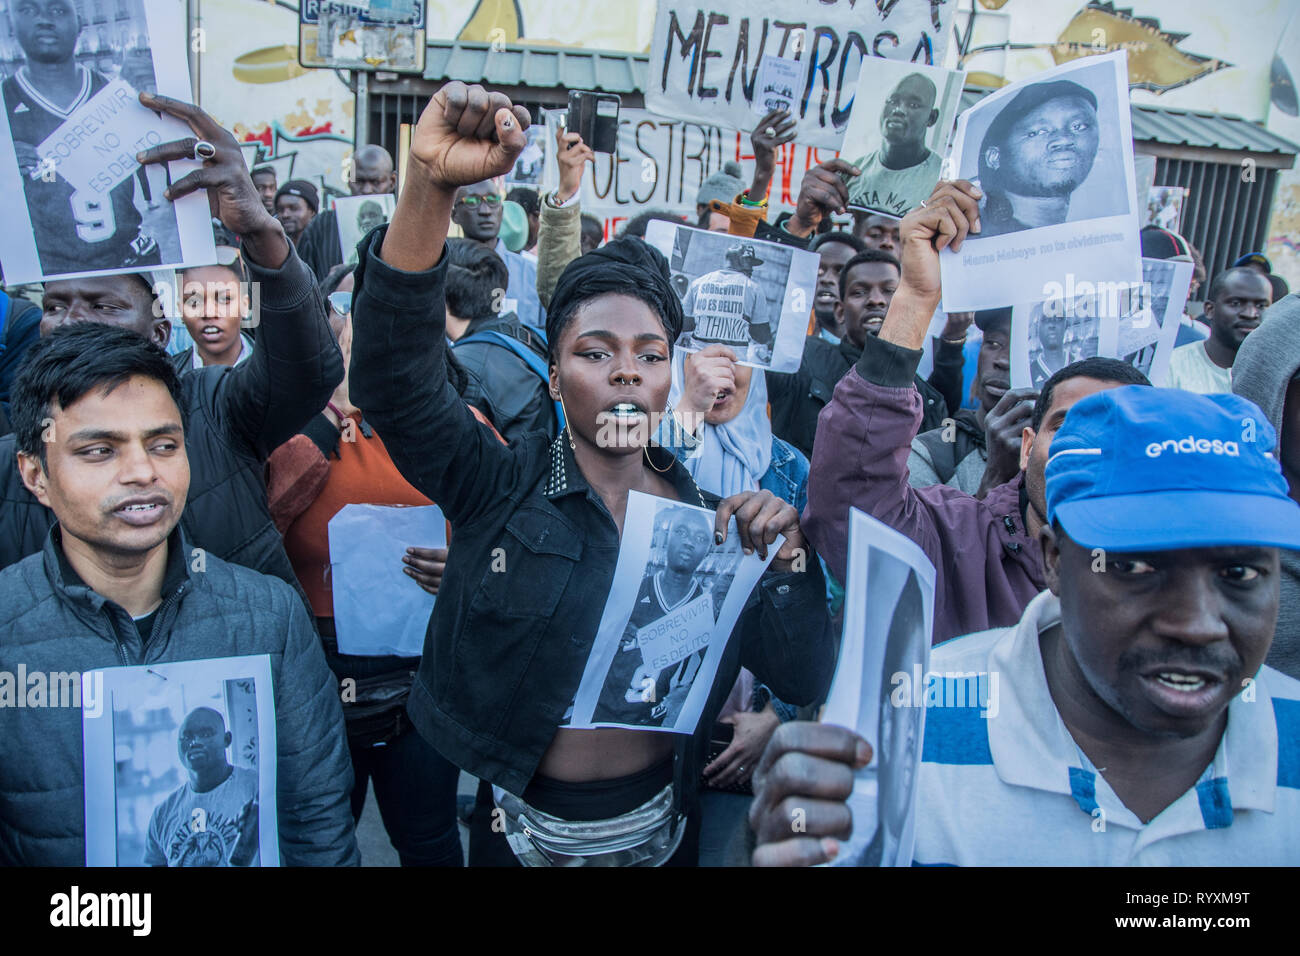 Madrid, Spain. 15th Mar 2019. People screaming 'no more instiutional racism in Madrid, Spain' March to commemorate one year of the death of senegalese vendor Mmame Mbage in Lavapies Square Nelson Mandela. one year ago there was a clashes between police and immigrants after Mmame Mbage, a Senegalese street vendor, died of a cardiac arrest allegedly after being chased by local police. Credit: Alberto Sibaja Ramírez/Alamy Live News - Stock Image